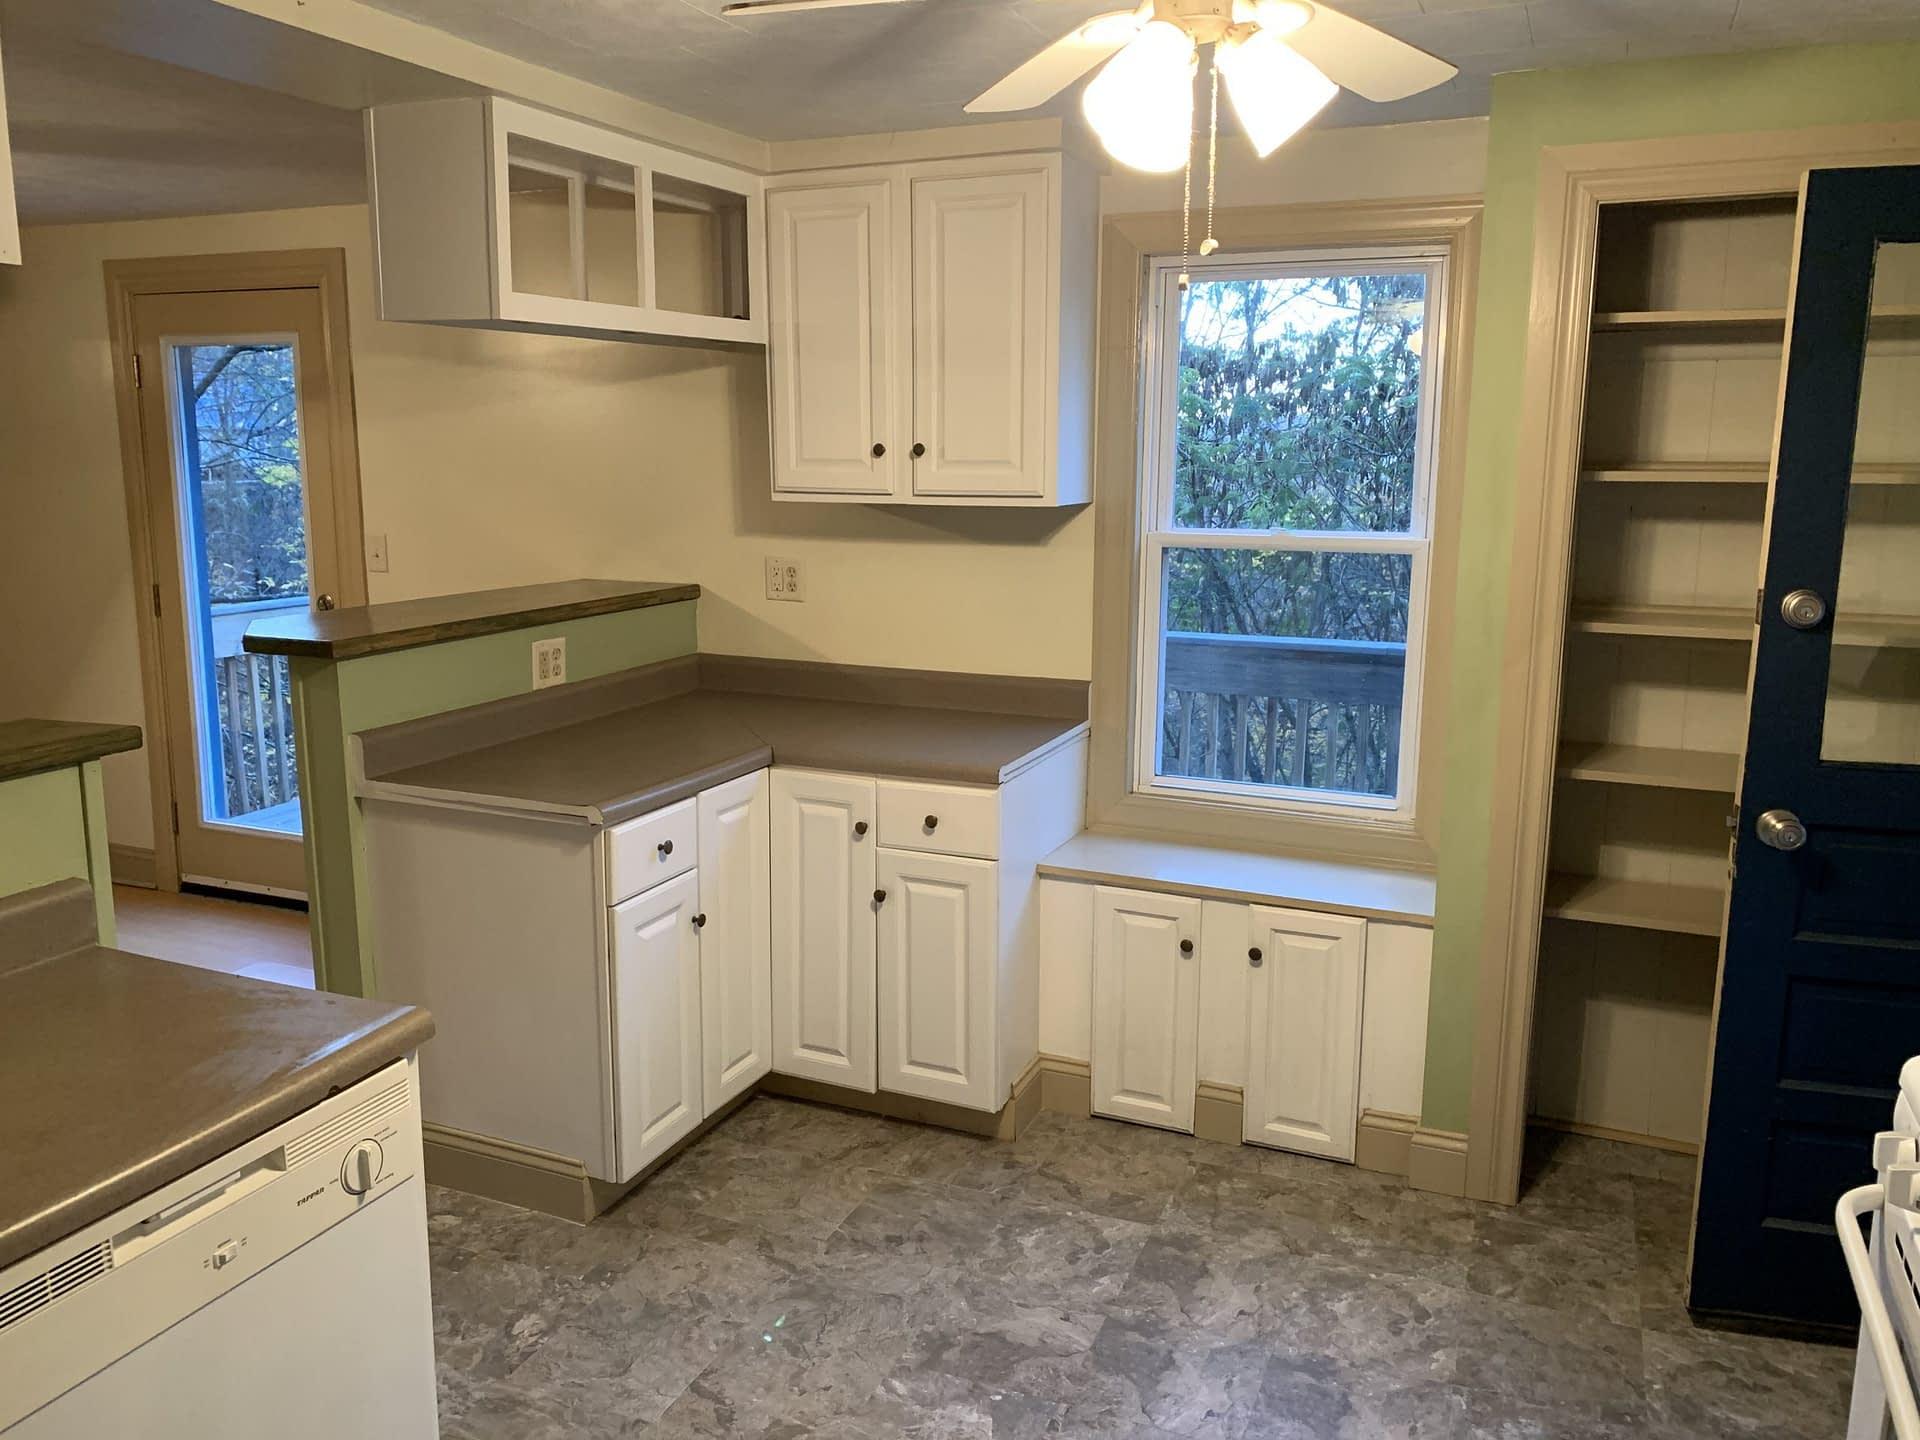 Kitchen Counters and window